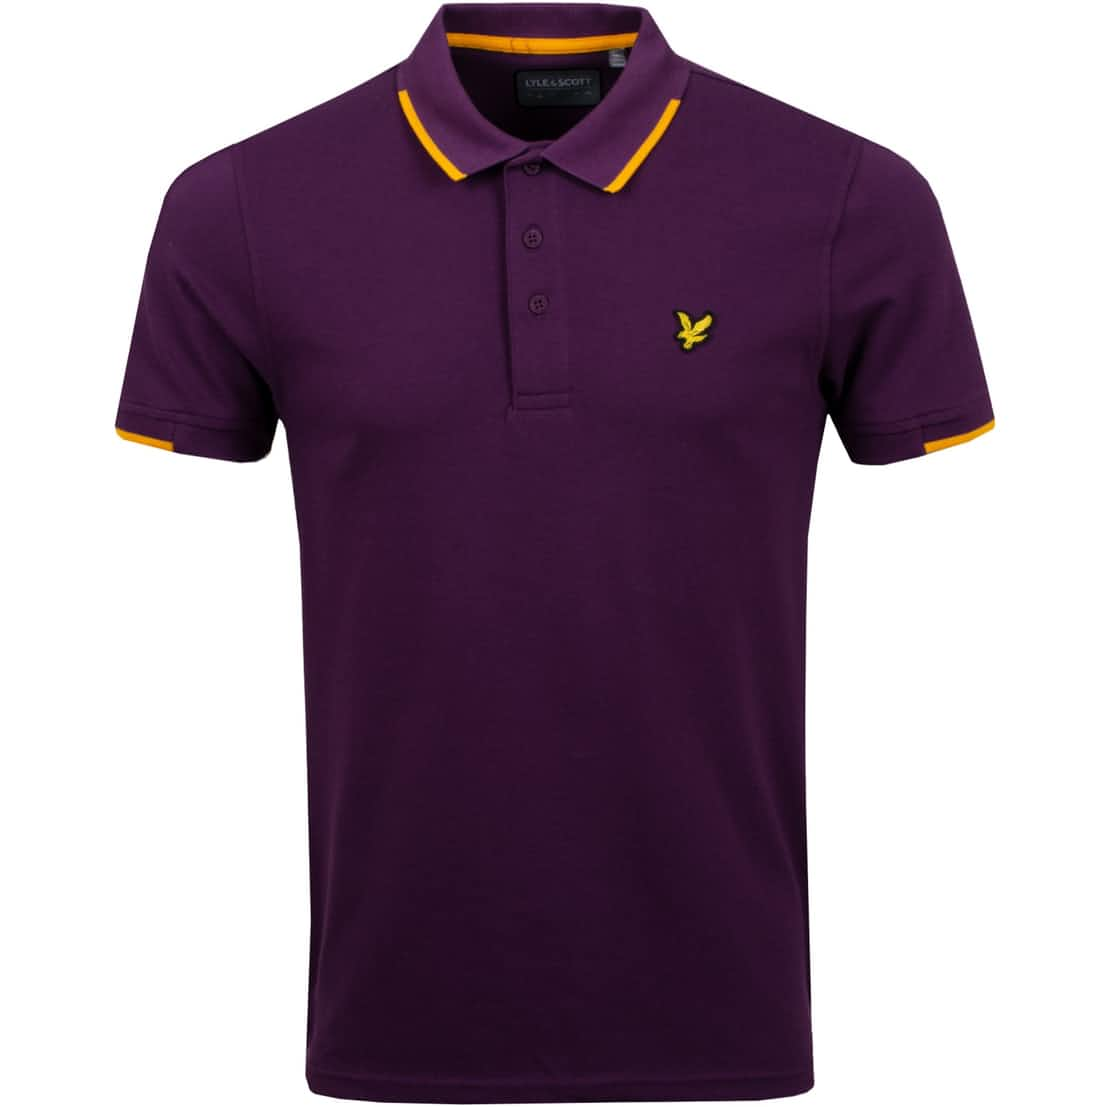 Andrew Tipping Polo Plum Wine - AW20